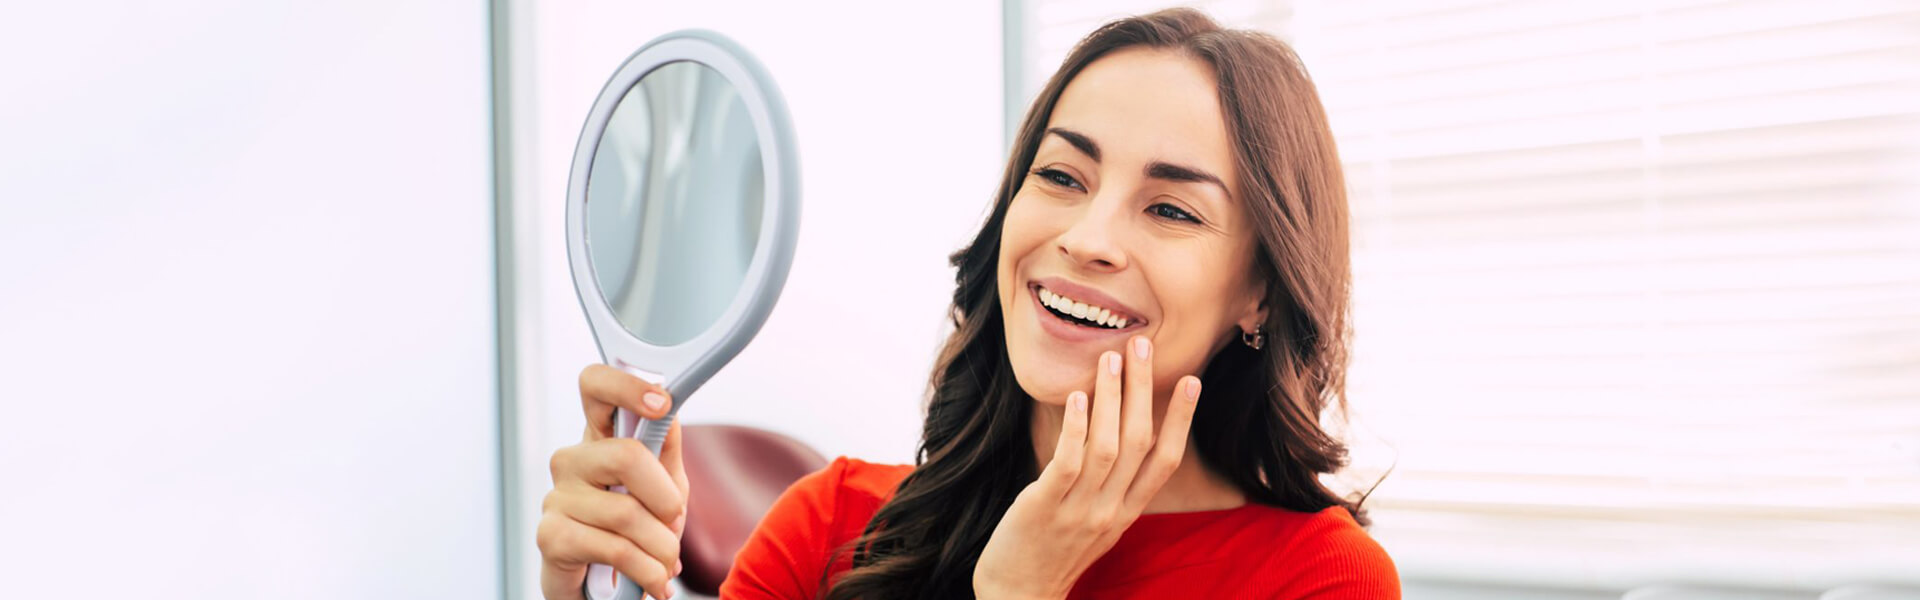 Crucial Facts to Know Before Getting Dental Crowns